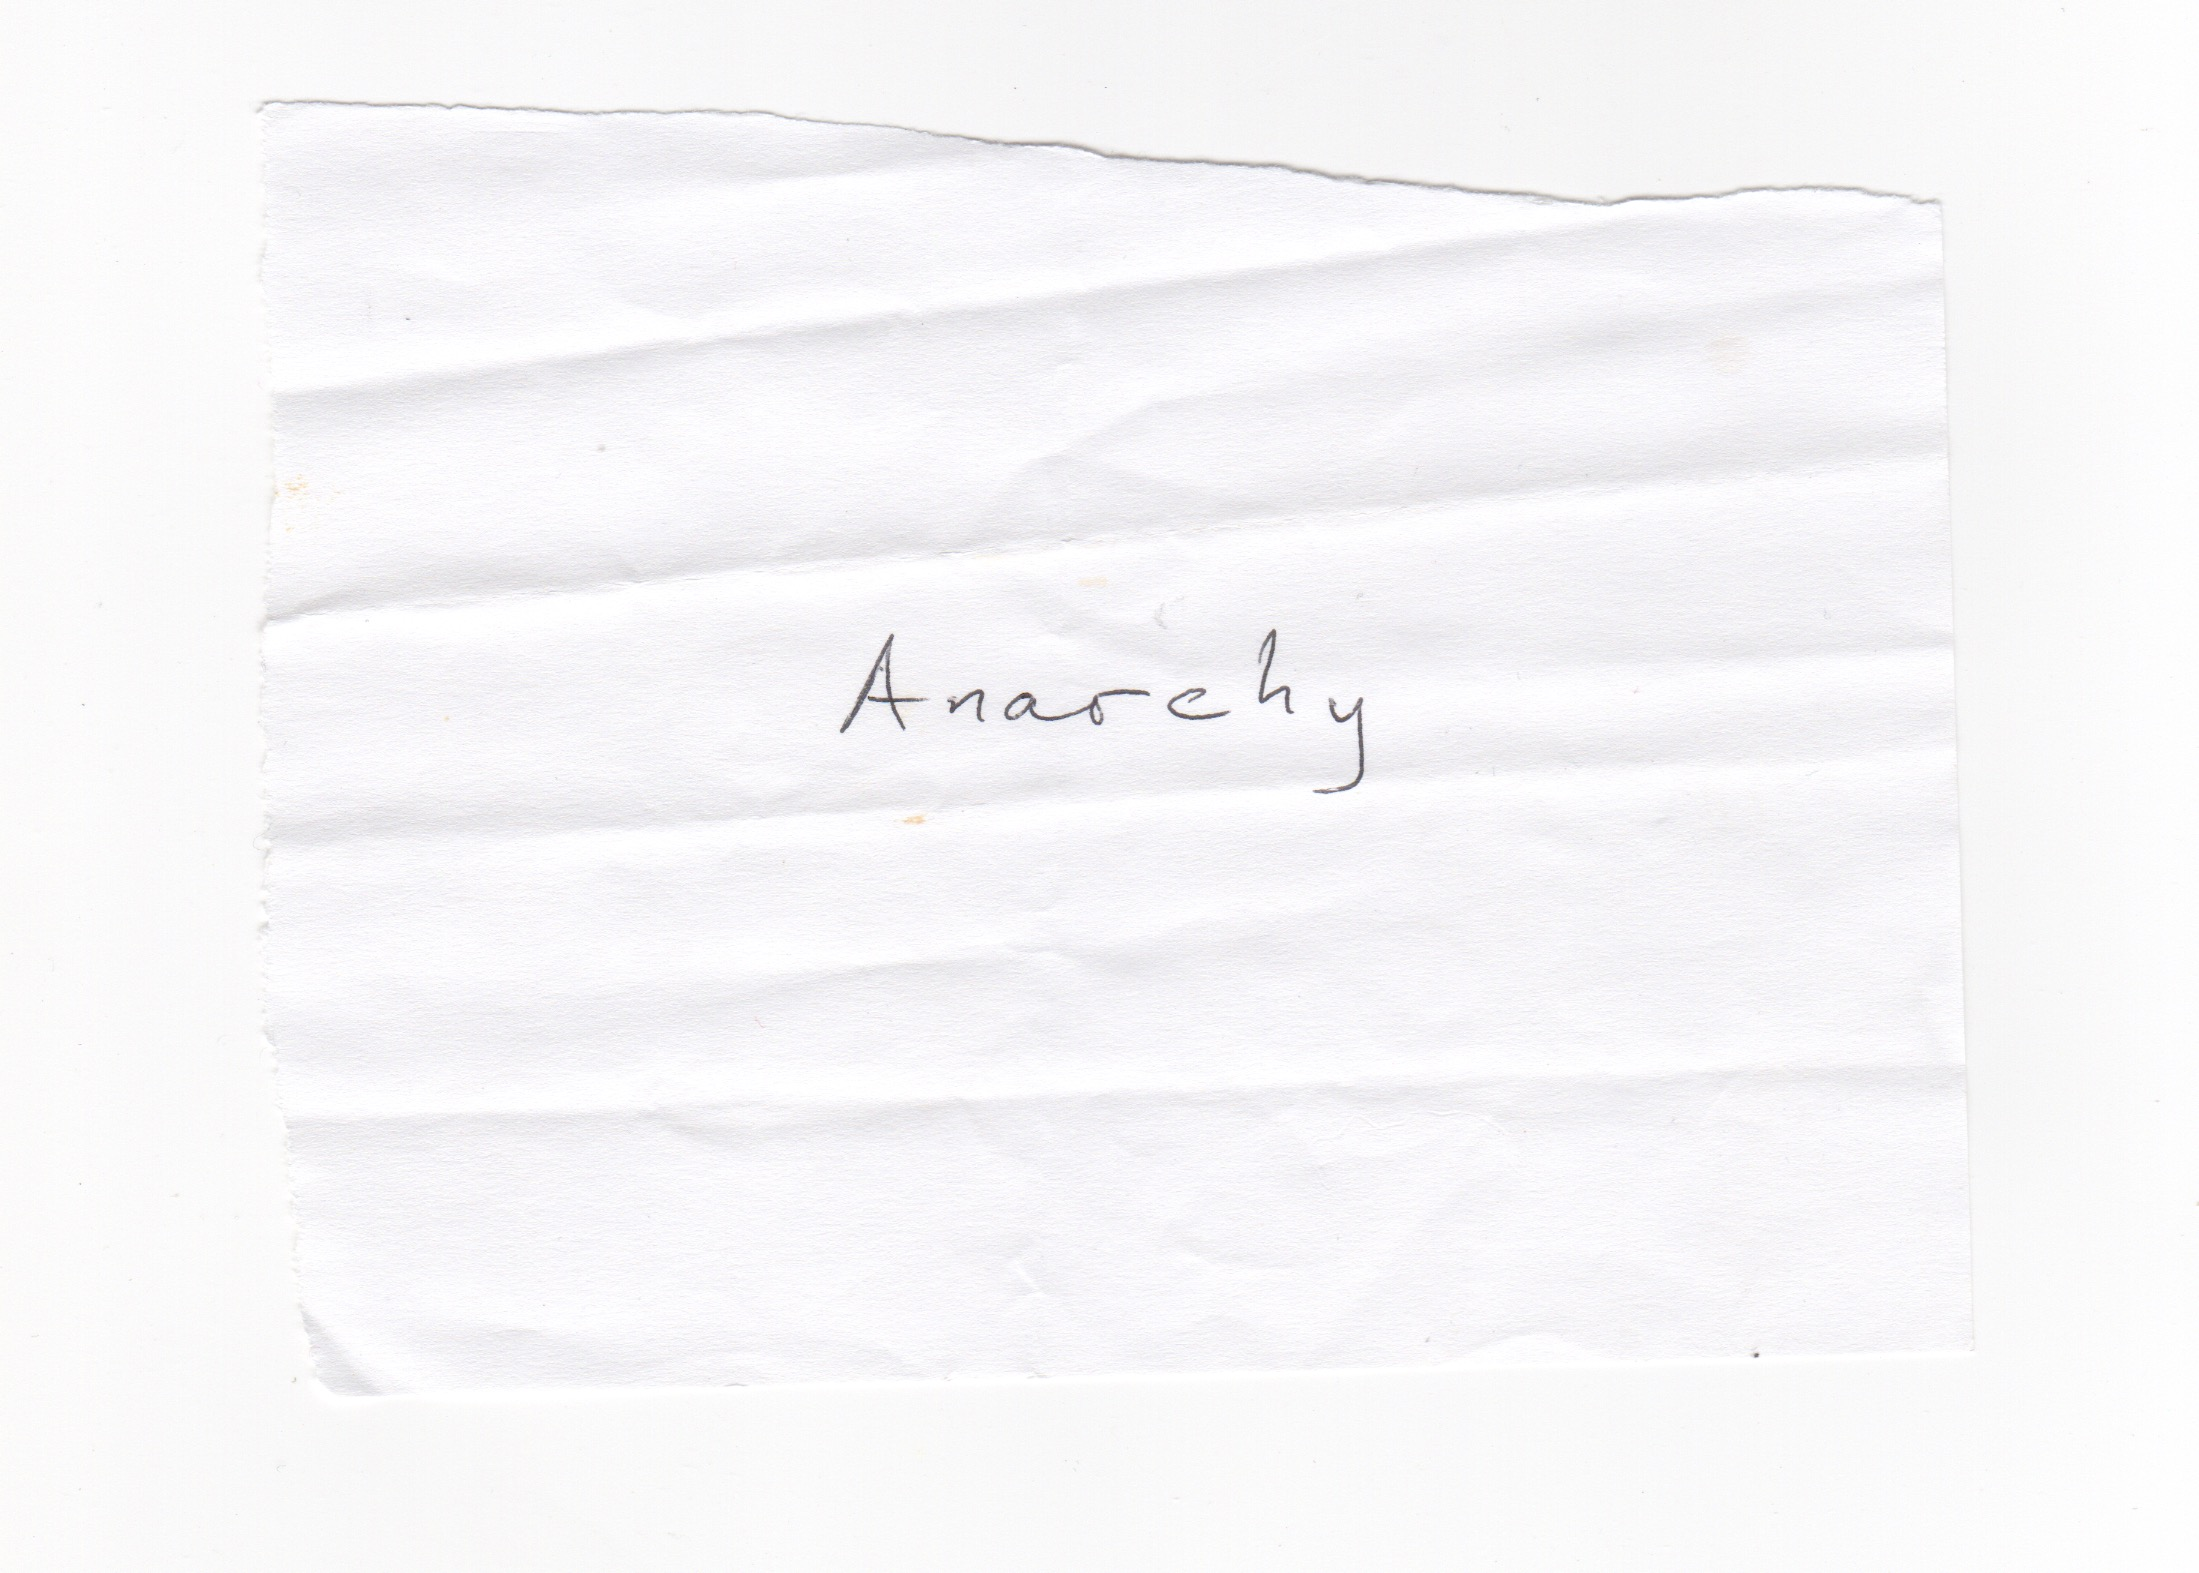 Found on the street. Anarchy simply written, in the centre of the ripped piece of paper.